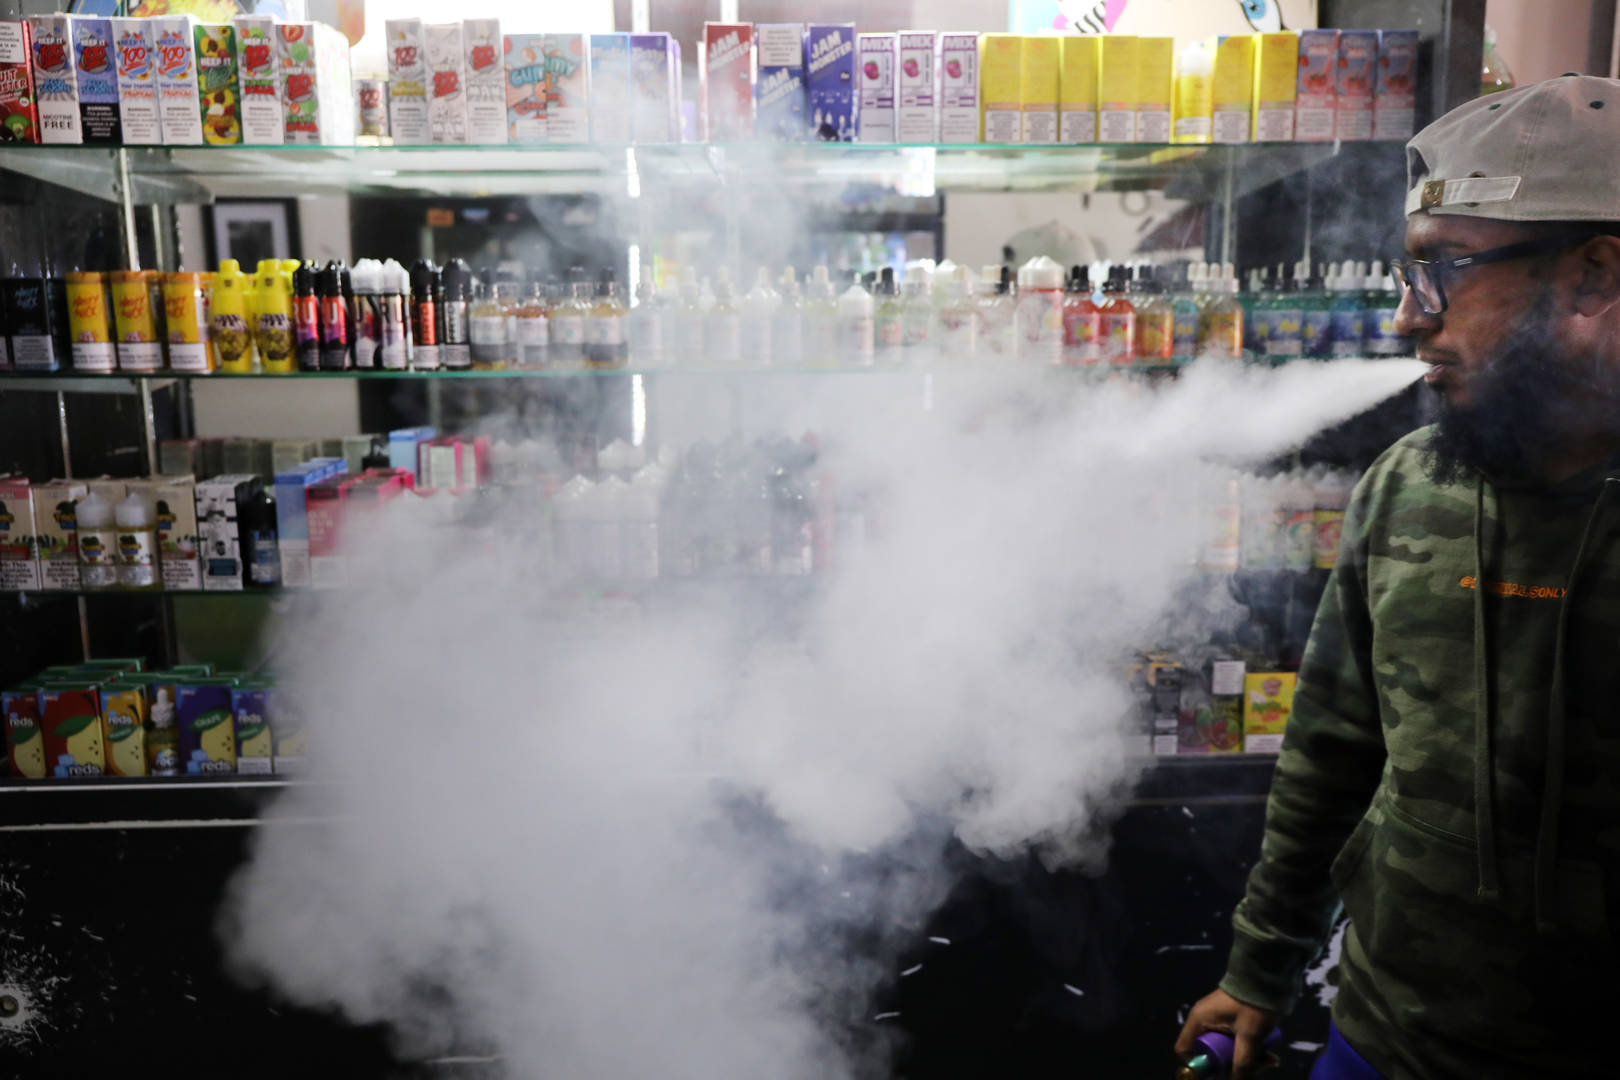 Vaping-Related Deaths Linked To THC More Frequently Than Nicotine